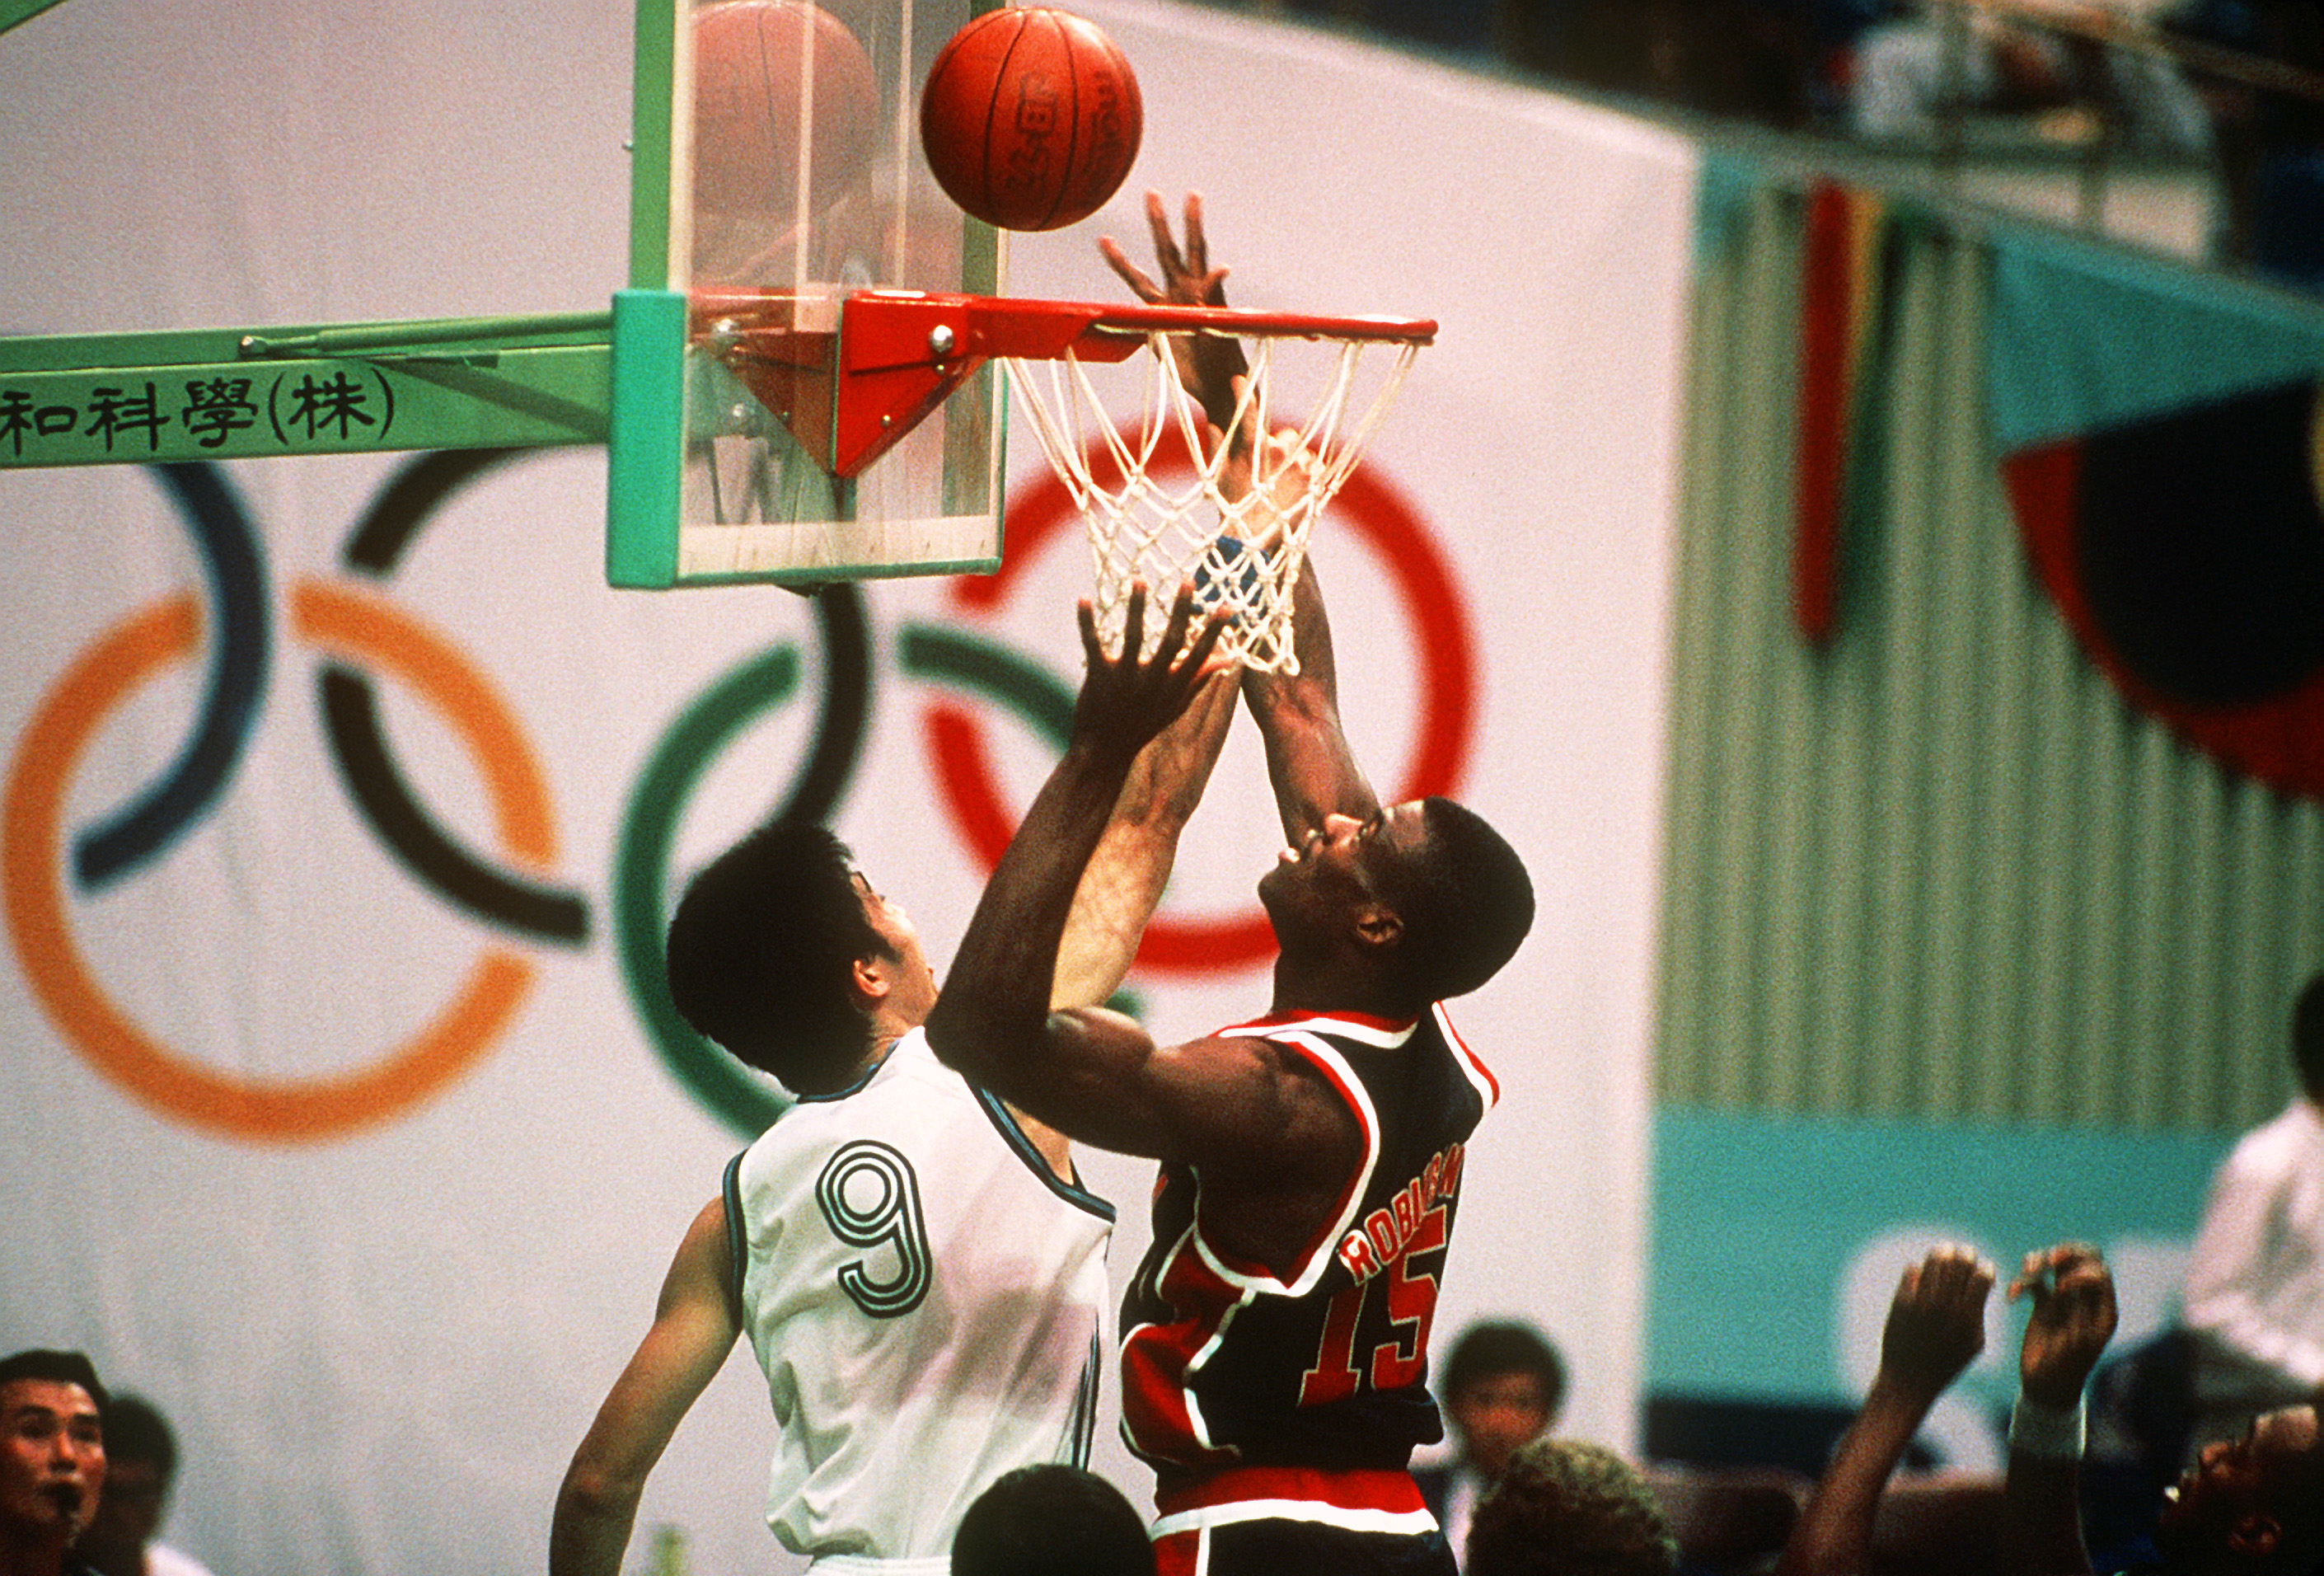 David Robinson of the U.S. Olympic men's basketball team goes up for a shot during a preliminary round game against the team from China during the XXIV Olympic Games.